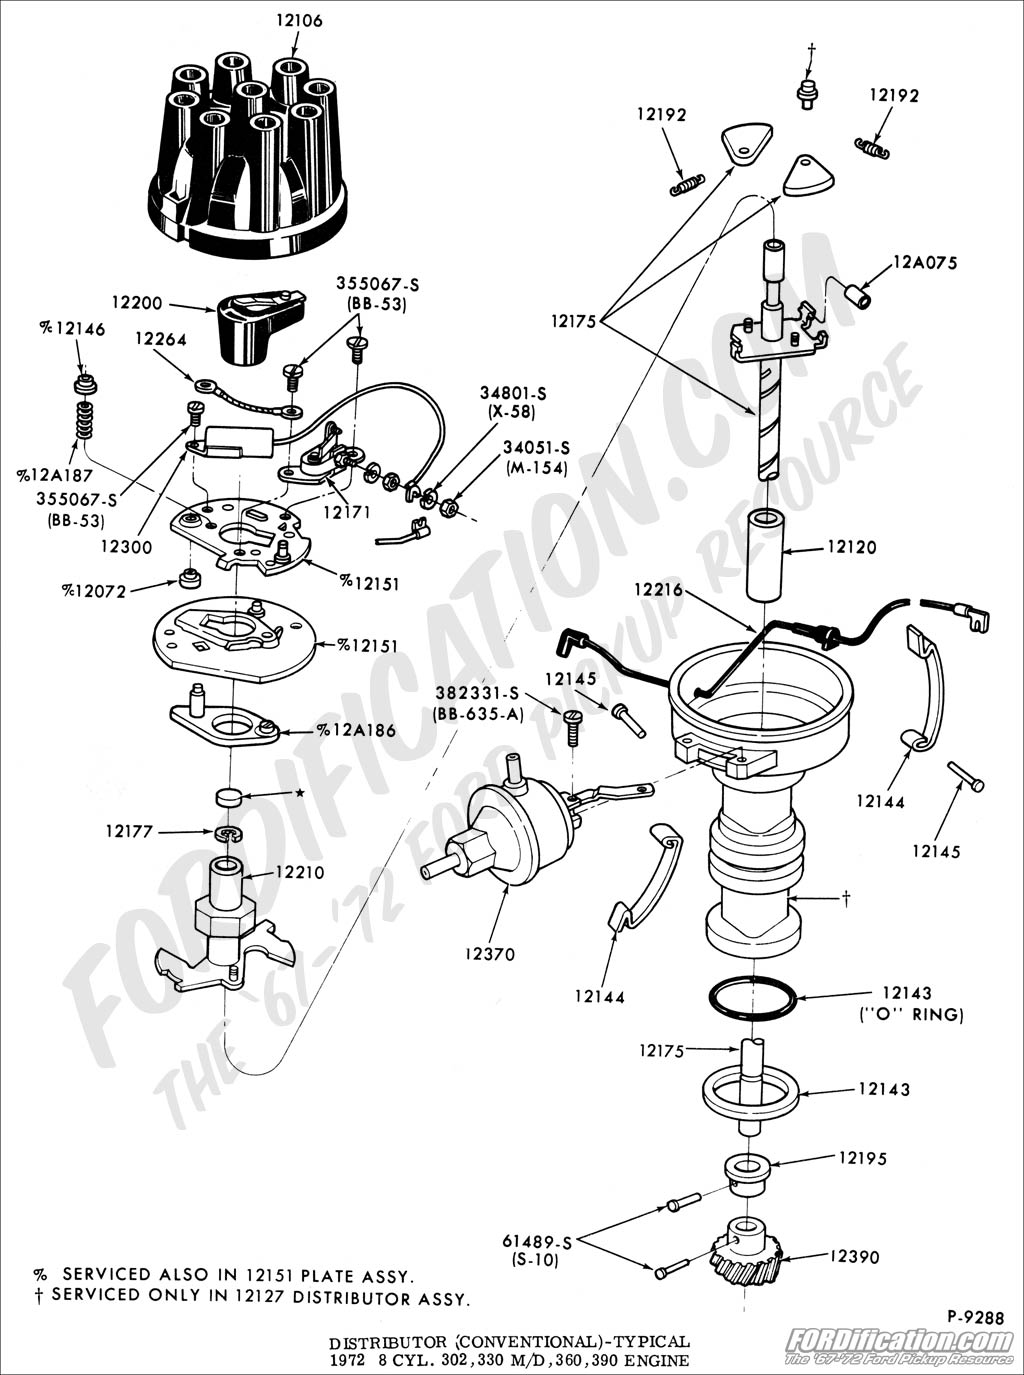 Honda Civic Fan Switch Location in addition PGOBugsterFinalDriveSystemEXPLODED as well Sx Wiring Diagram Schemes Html together with Ford F150 Distributor Diagram besides Viewtopic. on ktm transmission